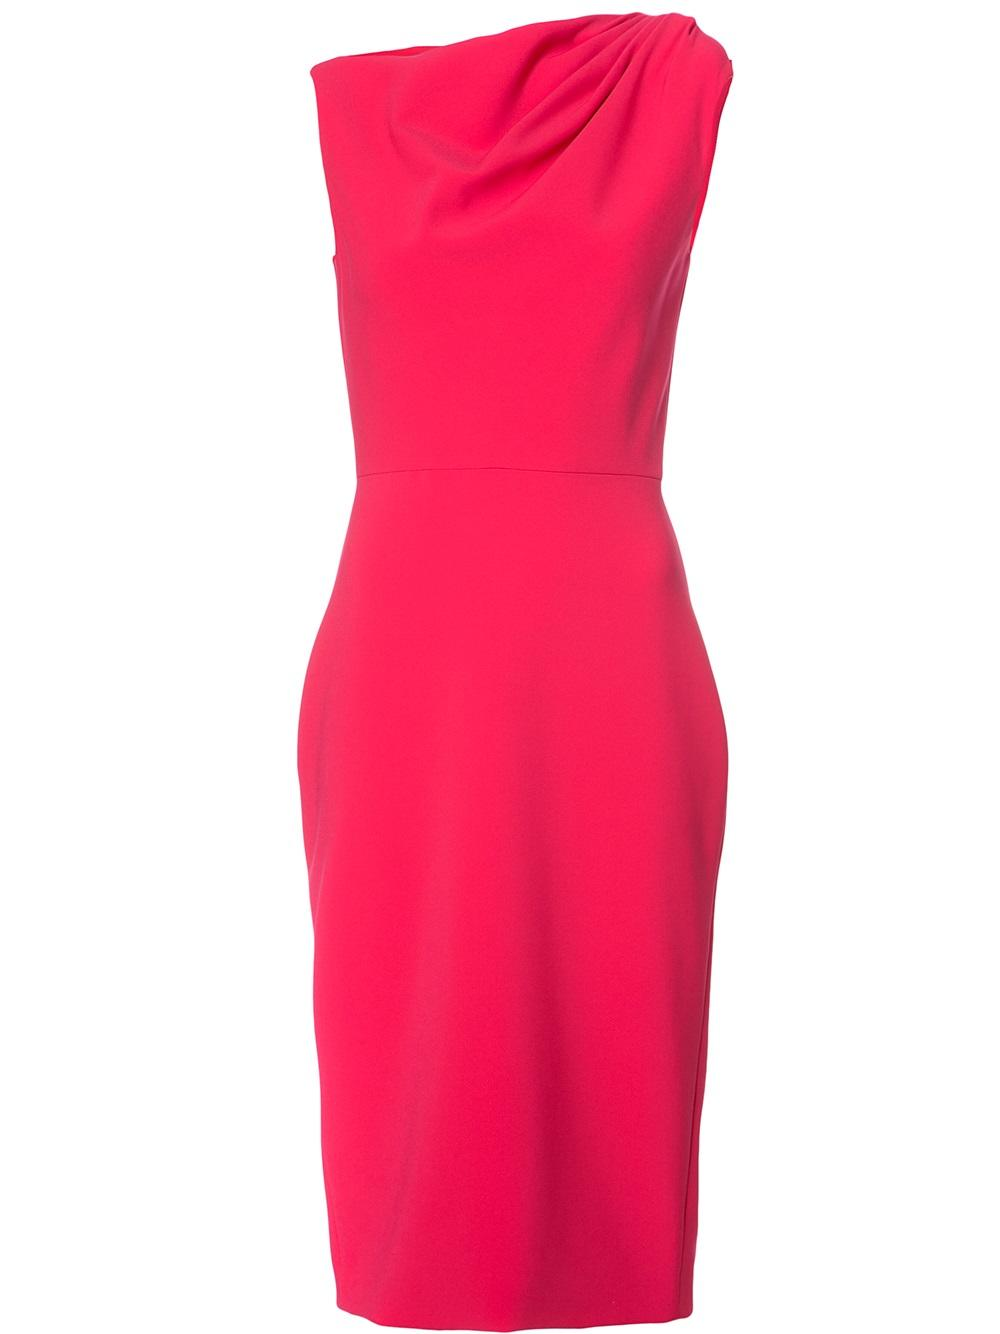 Christian Siriano Fushia asymmetrical dress, L'Armoire, New Canaan, CT, $1,050